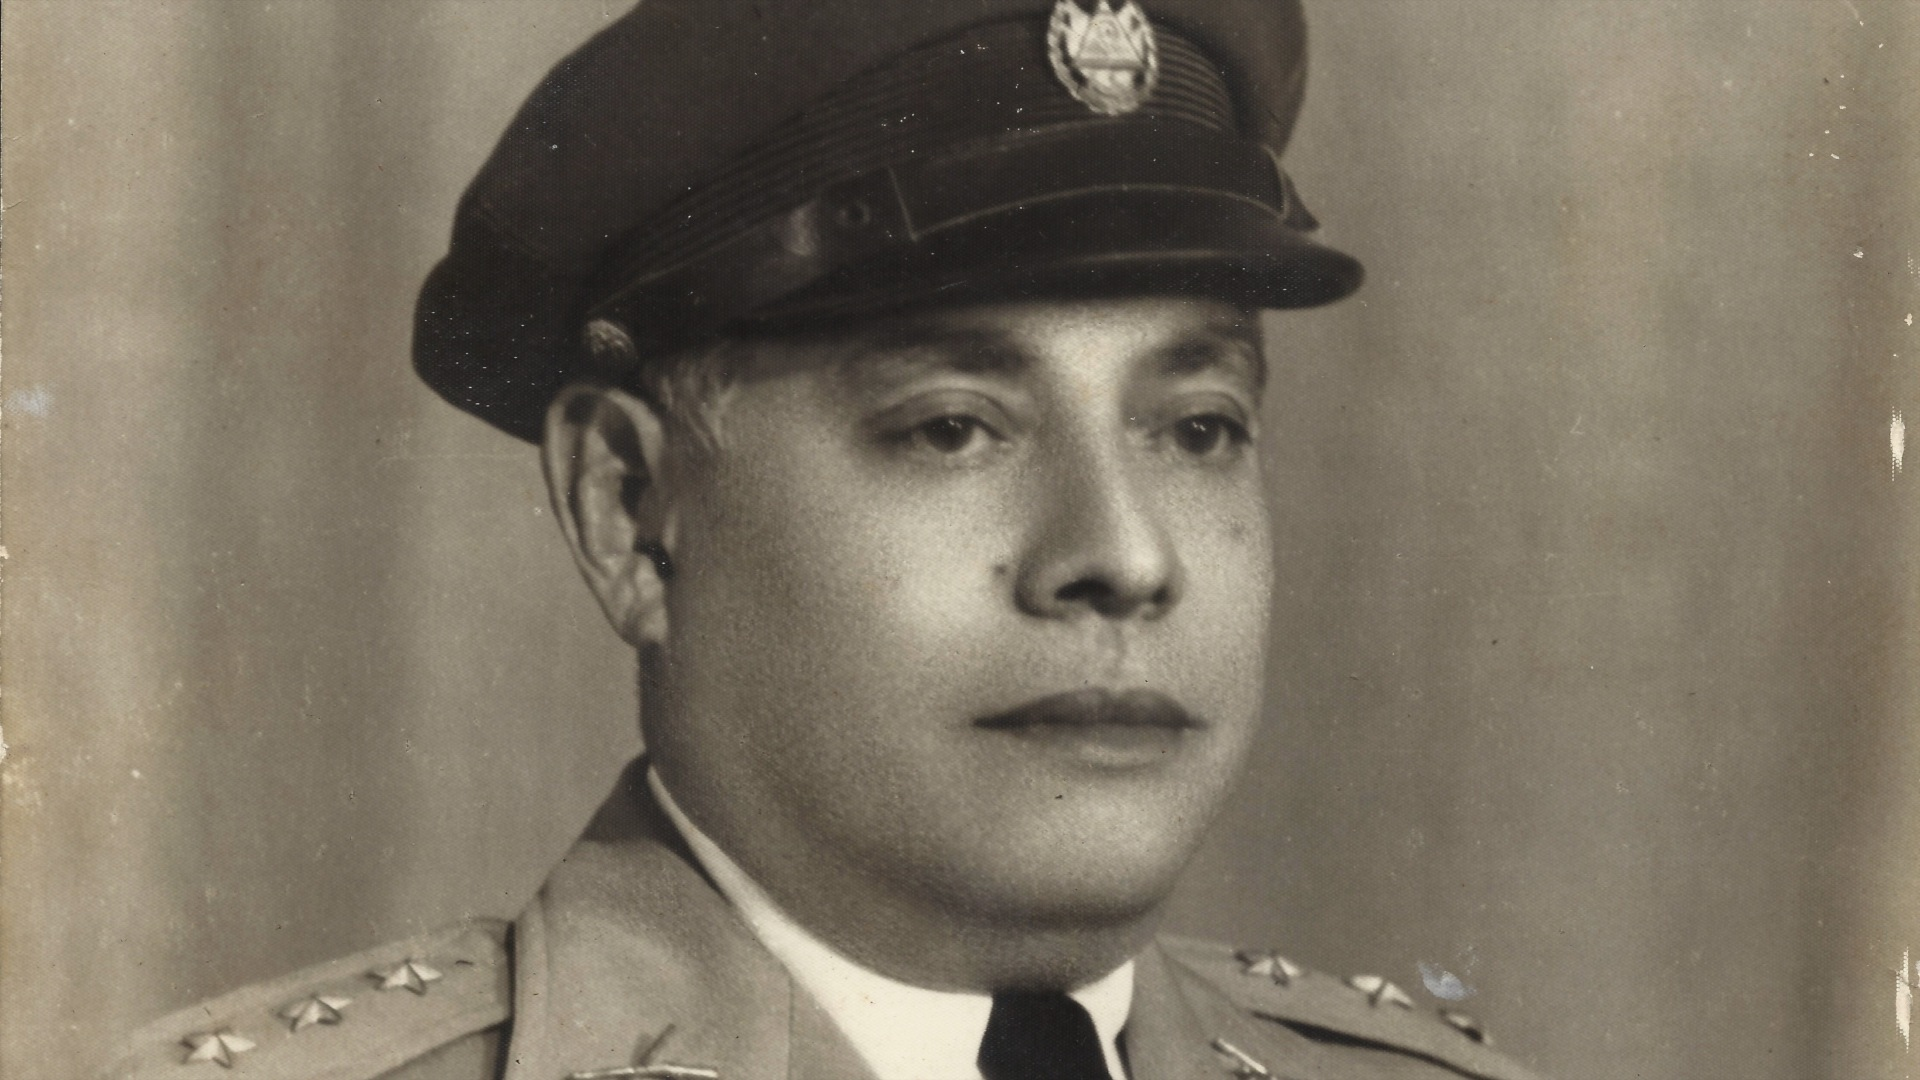 An army colonel and diplomat from El Salvador who helped save tens of thousands of Jews from Nazi persecution during World War II by providing them with false Salvadoran identity papers was honored in Germany.